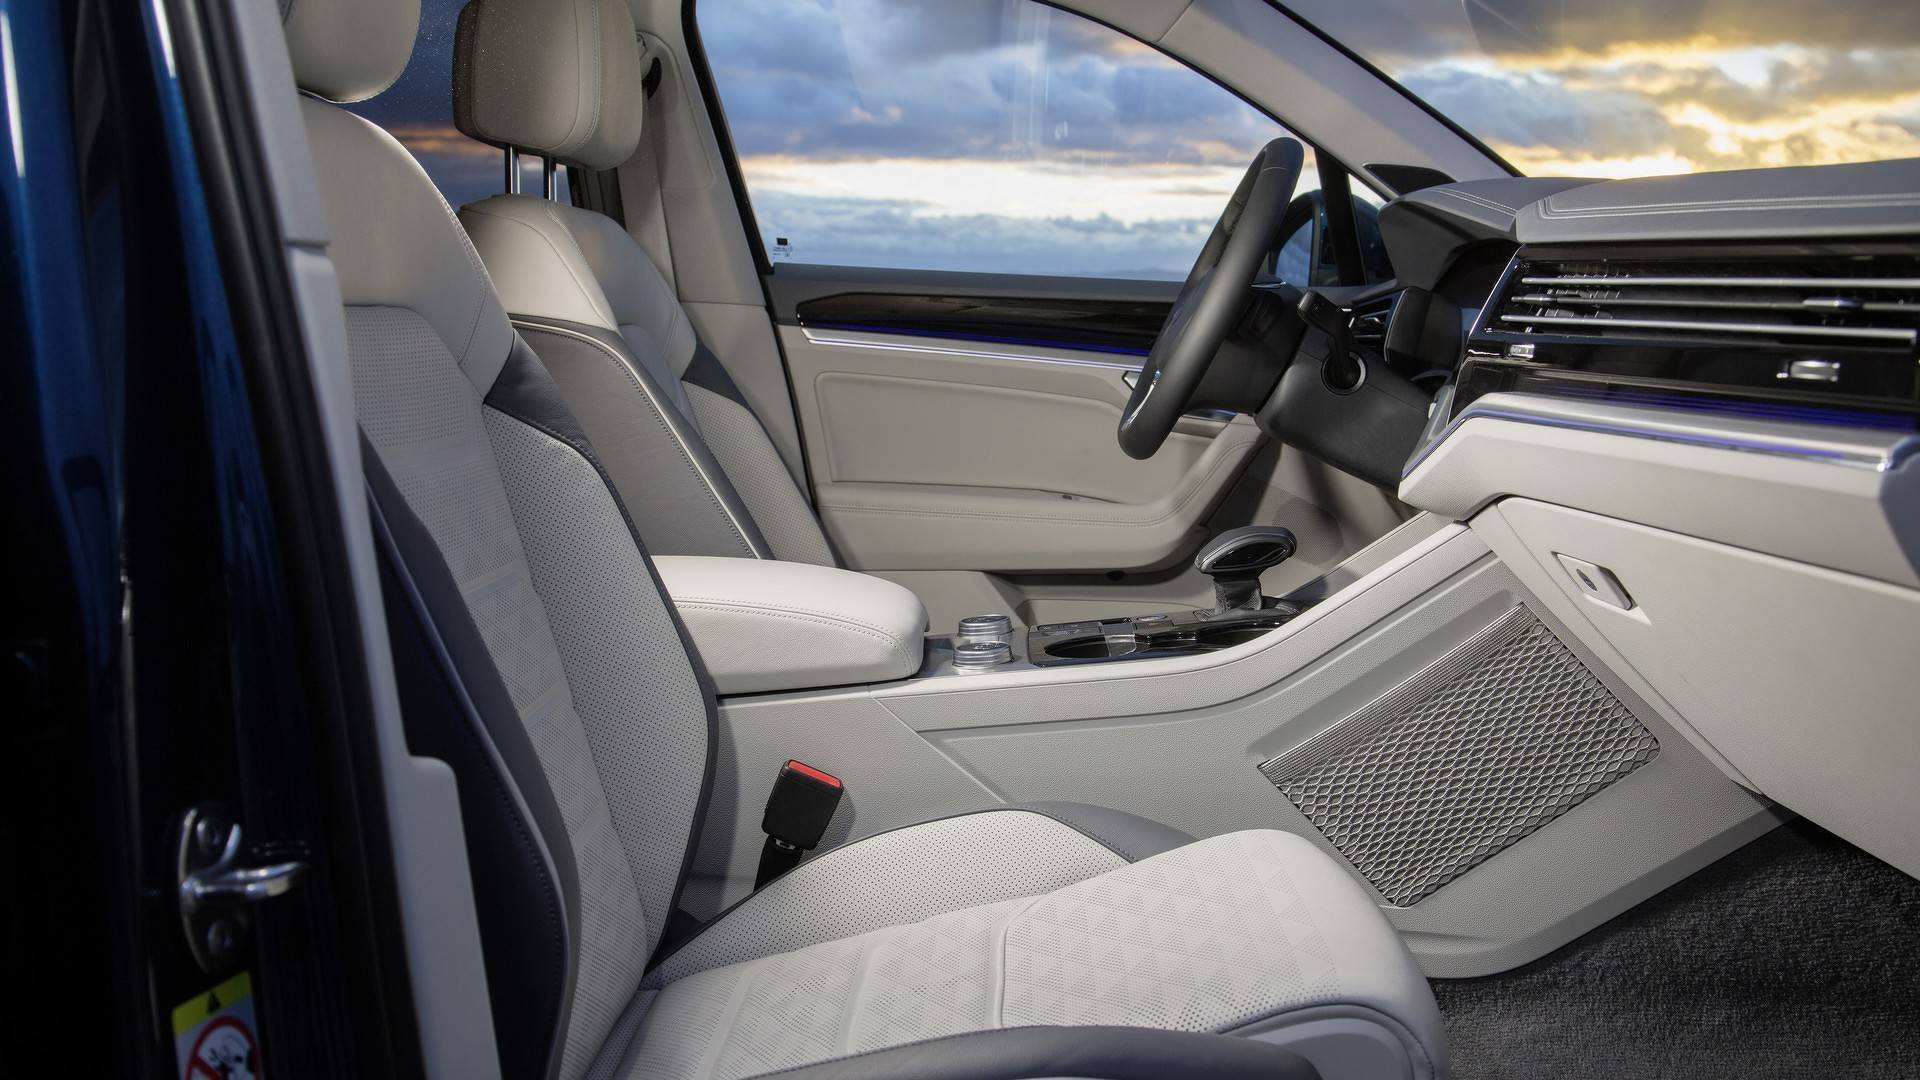 14 A Vw Touareg 2019 Interior Spy Shoot